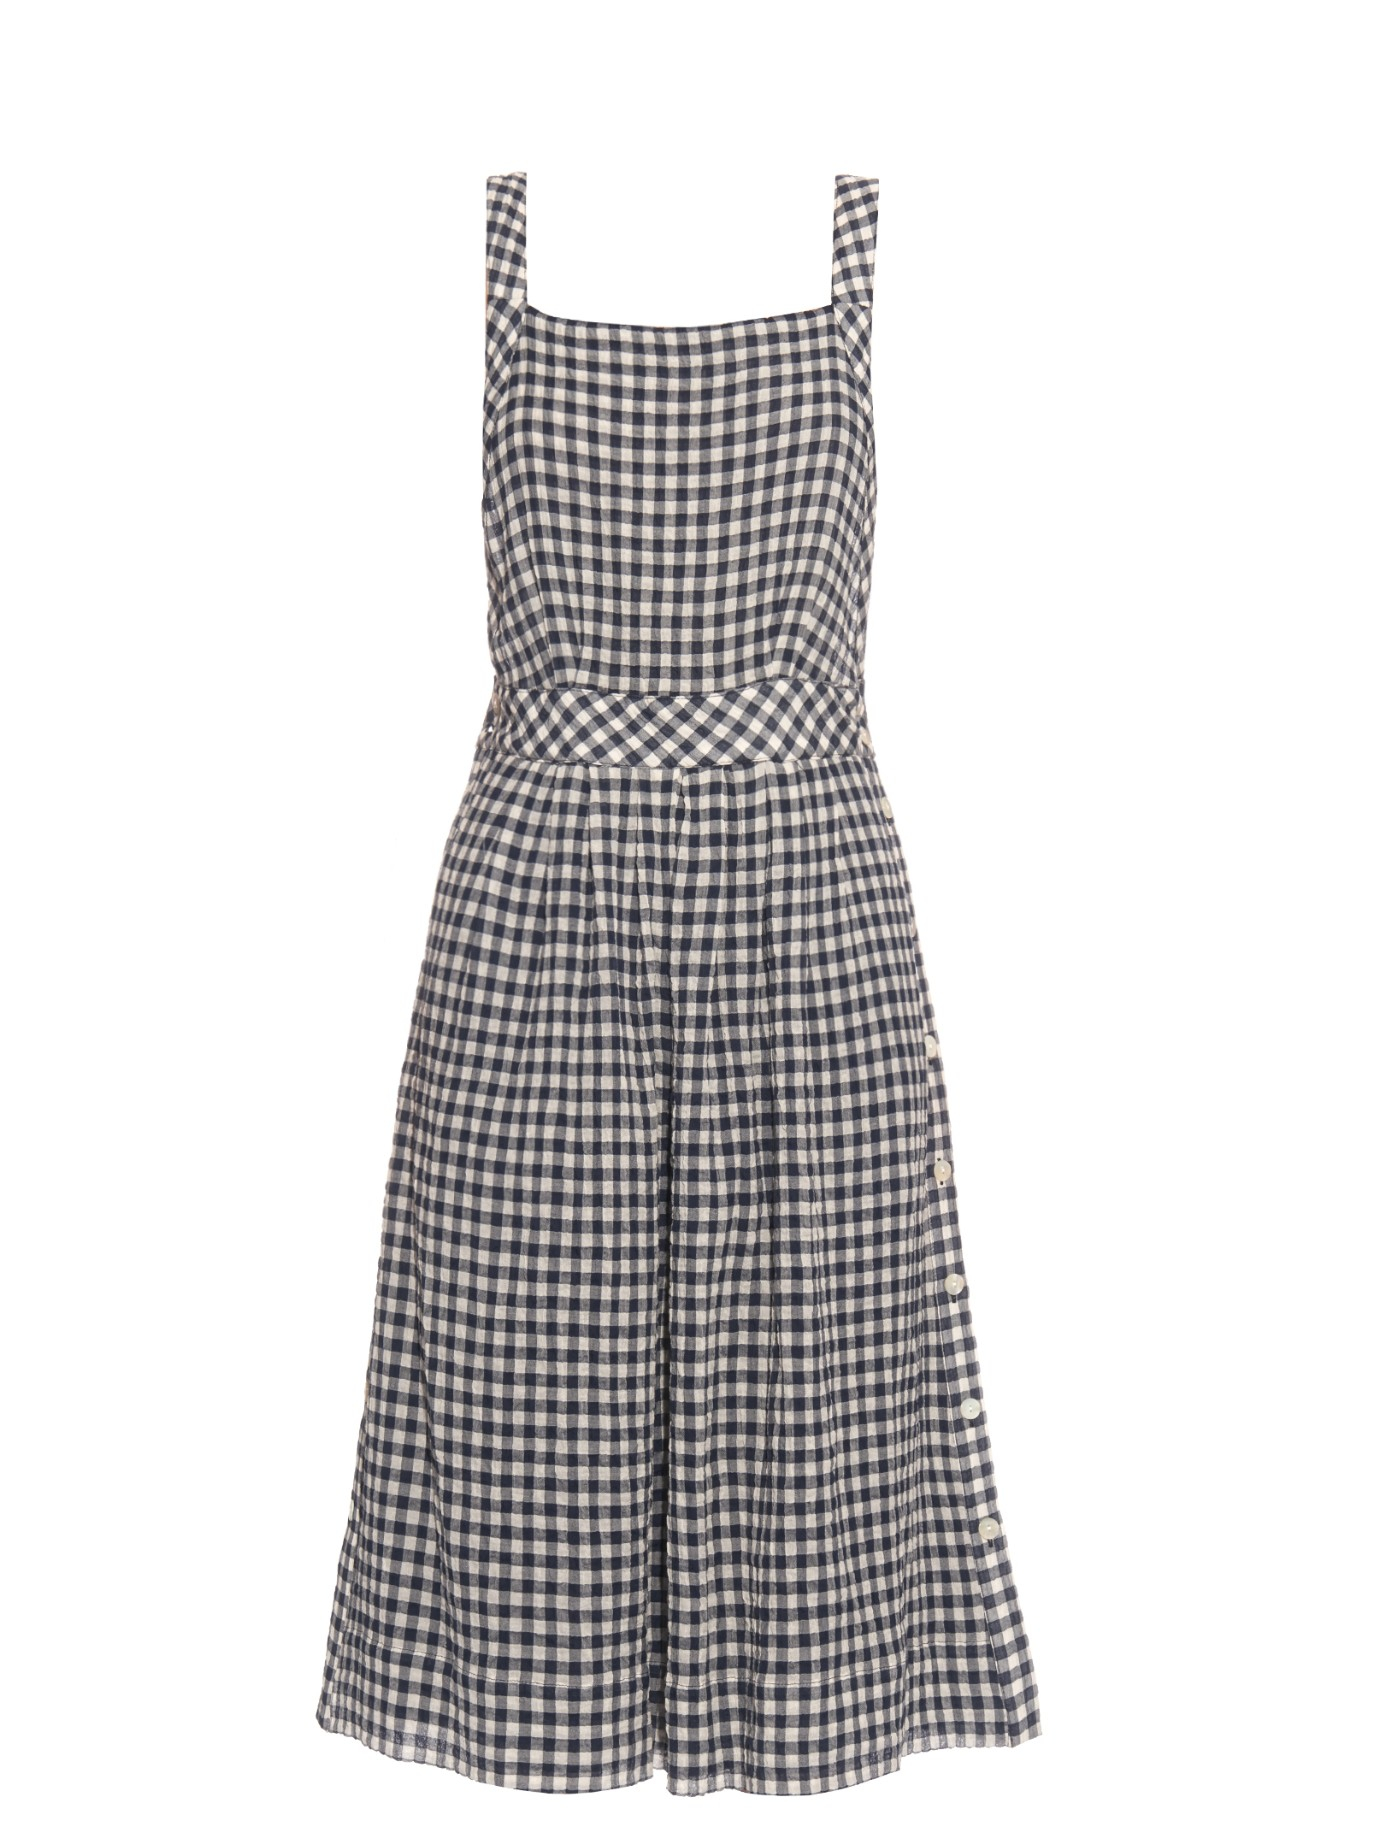 Find great deals on eBay for blue gingham pinafore dress. Shop with confidence.